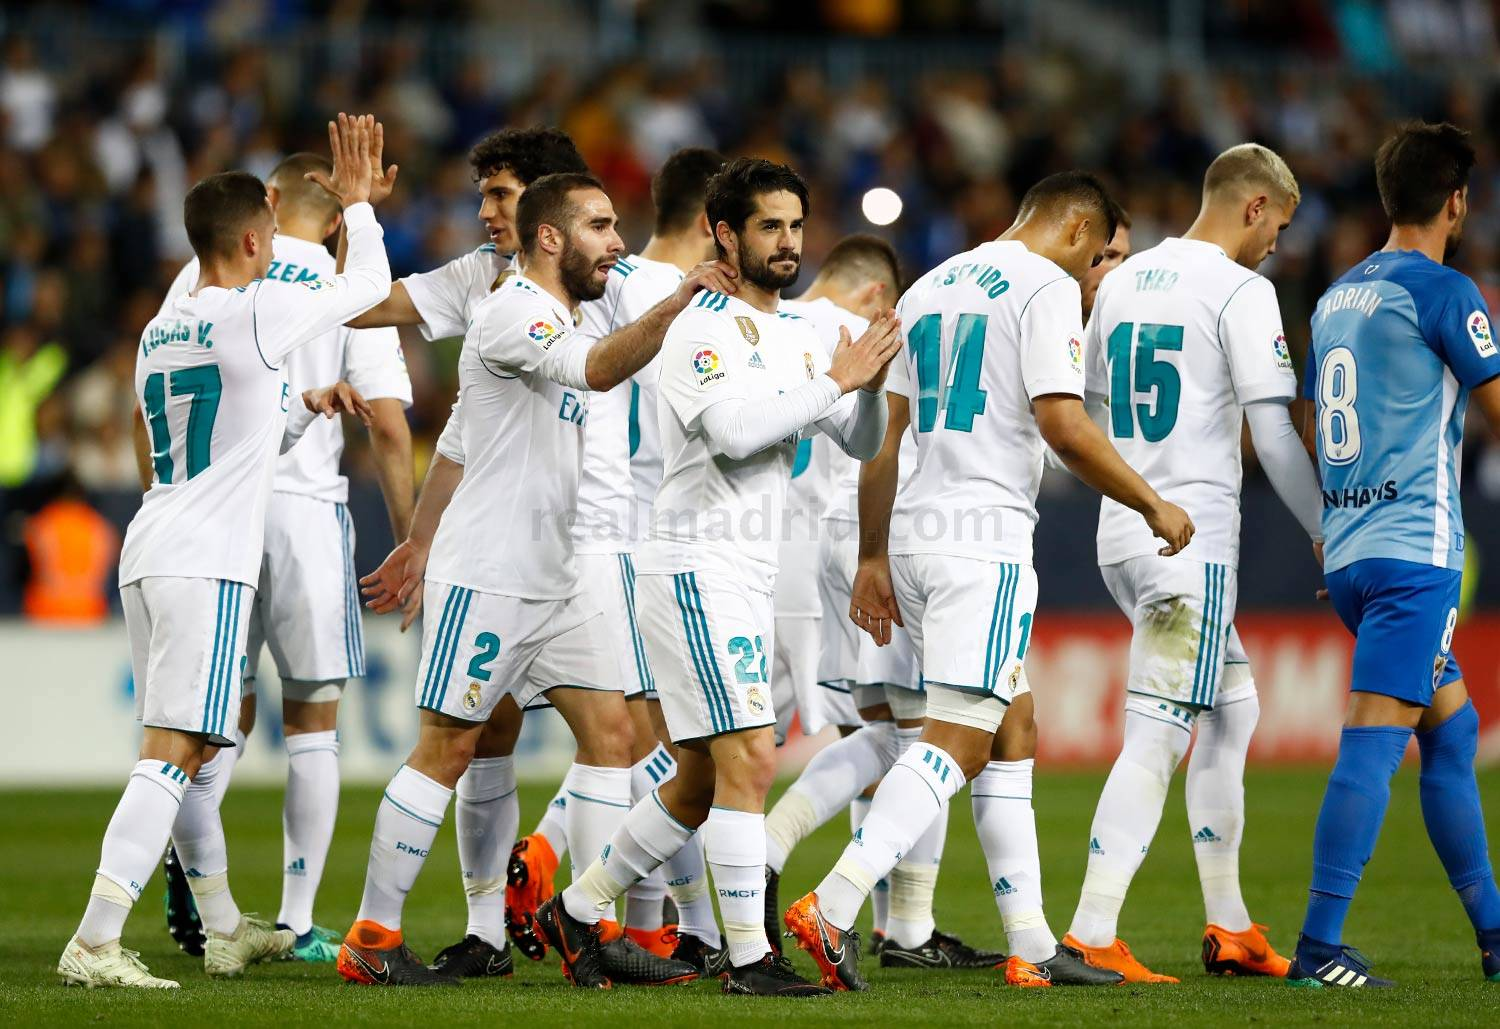 Real Madrid - Málaga - Real Madrid - 15-04-2018